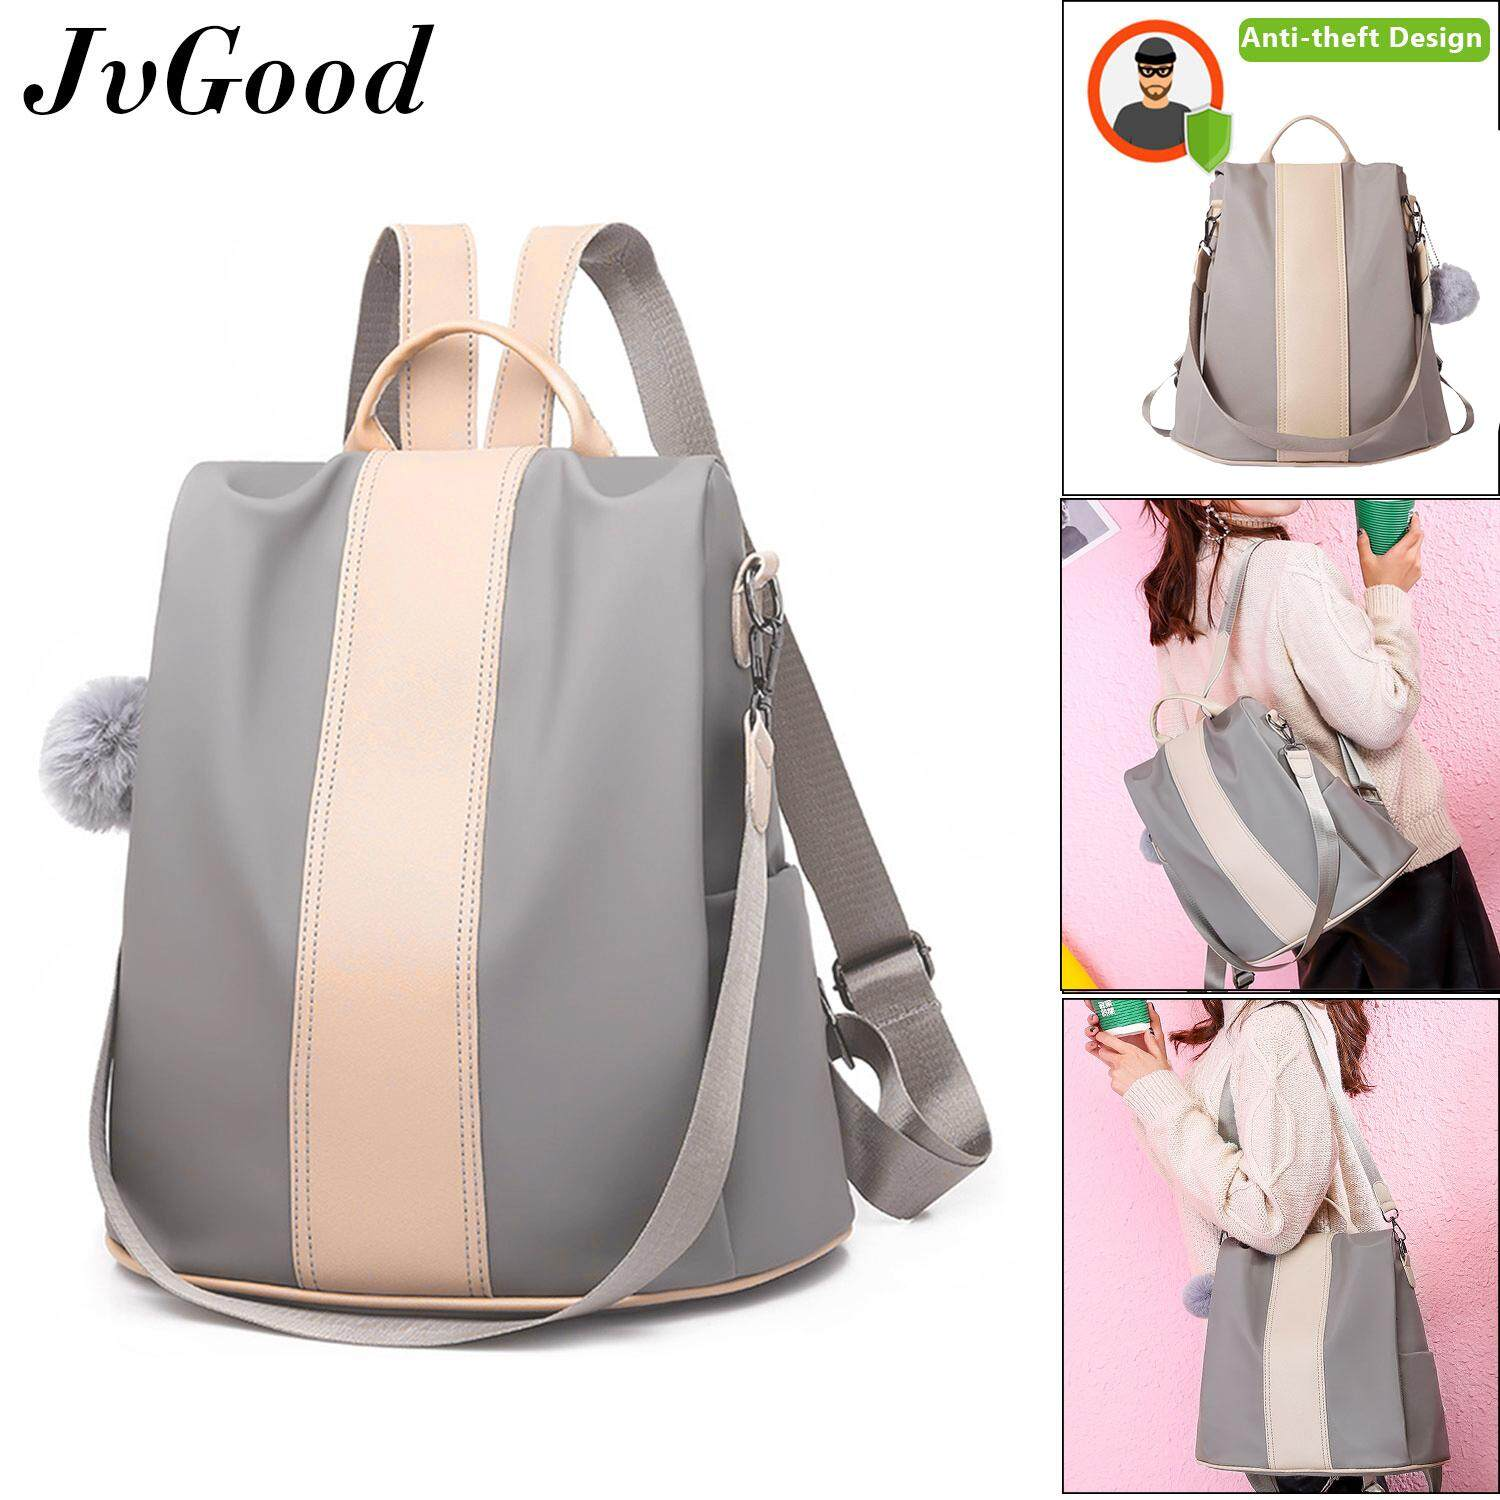 17a6d59fcc9c5 Women Bags - Buy Women Bags at Best Price in Malaysia